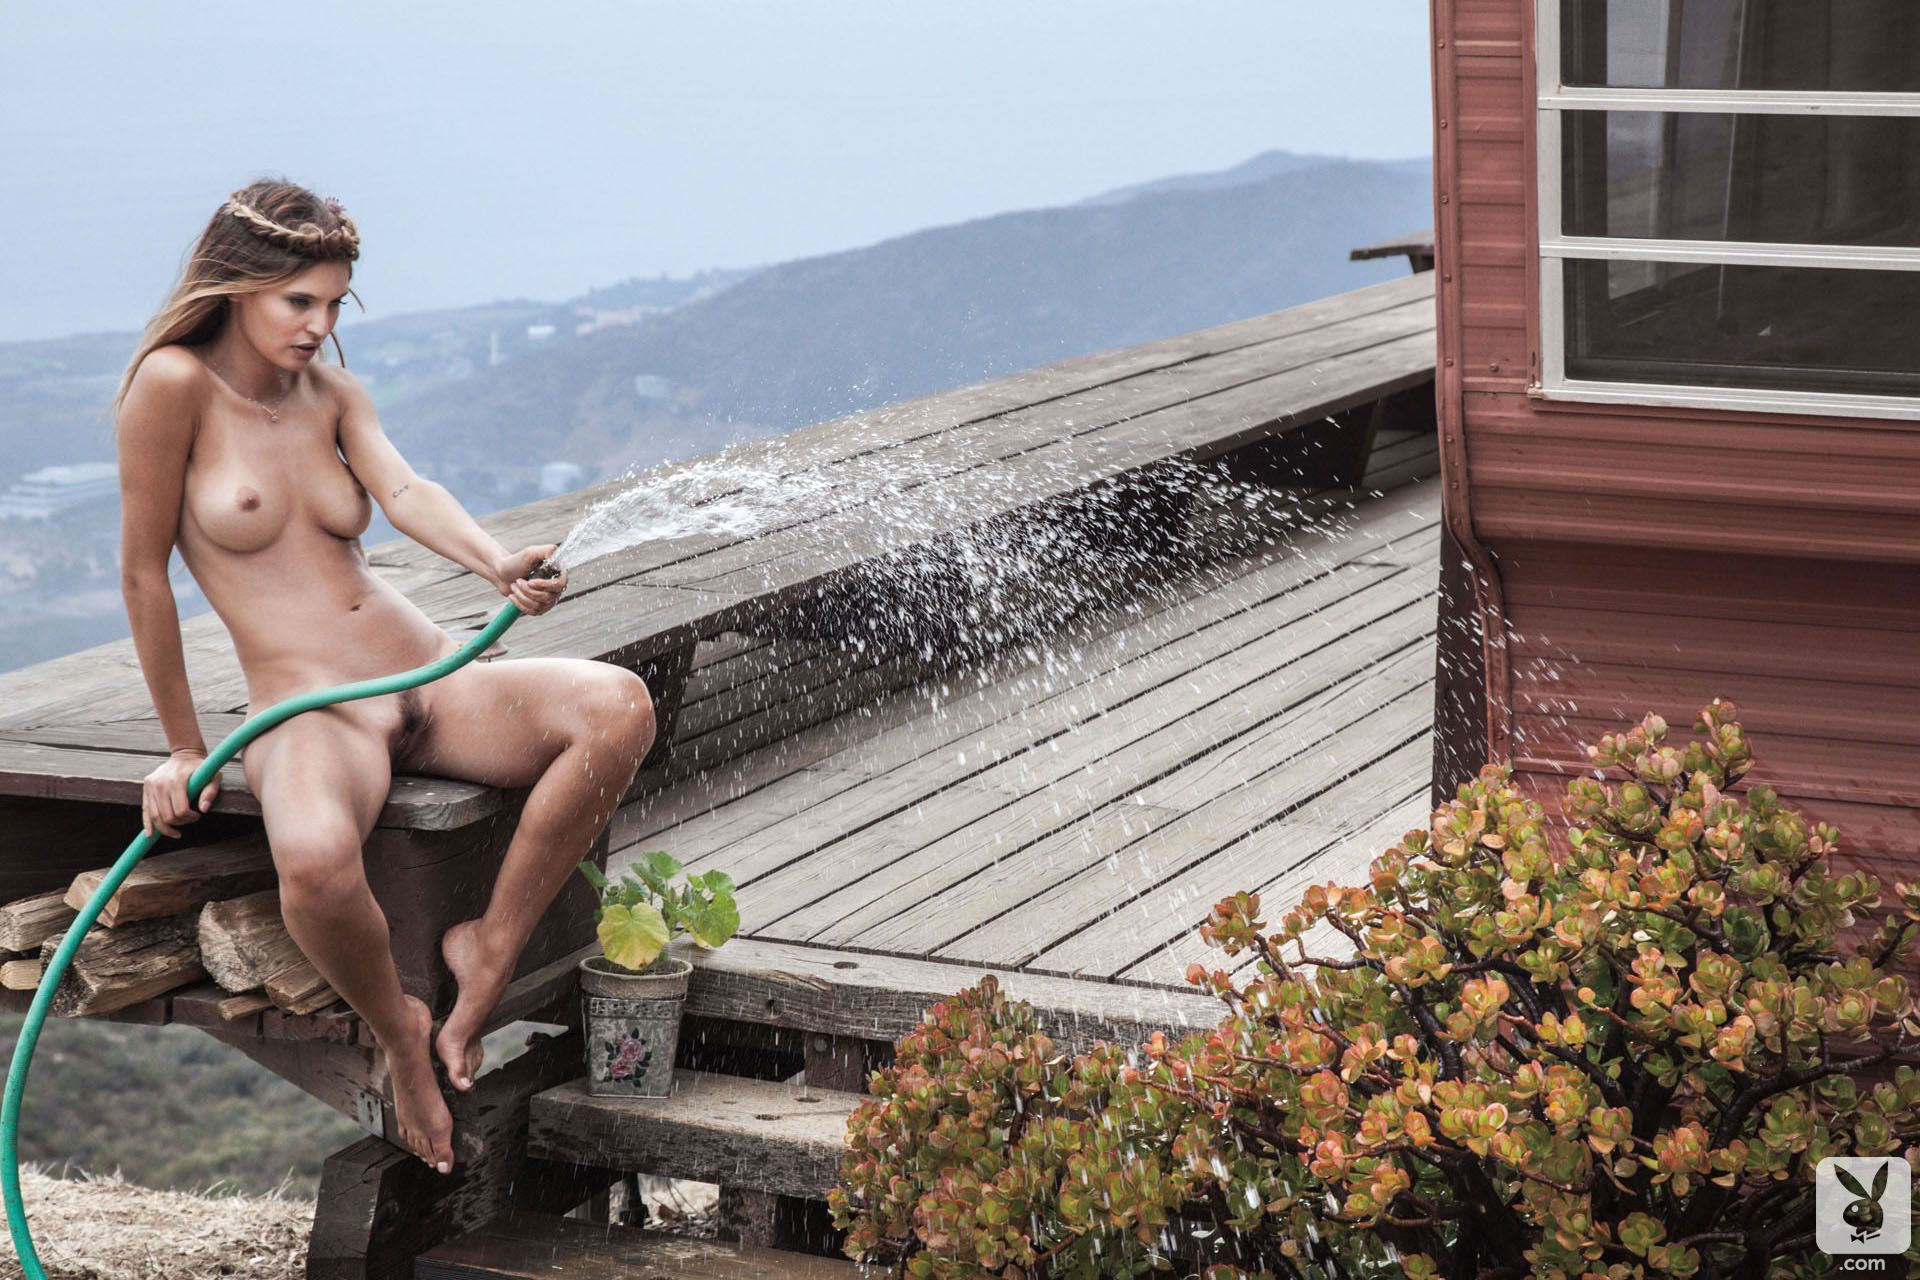 Nude Photos Of Bianca Bal...